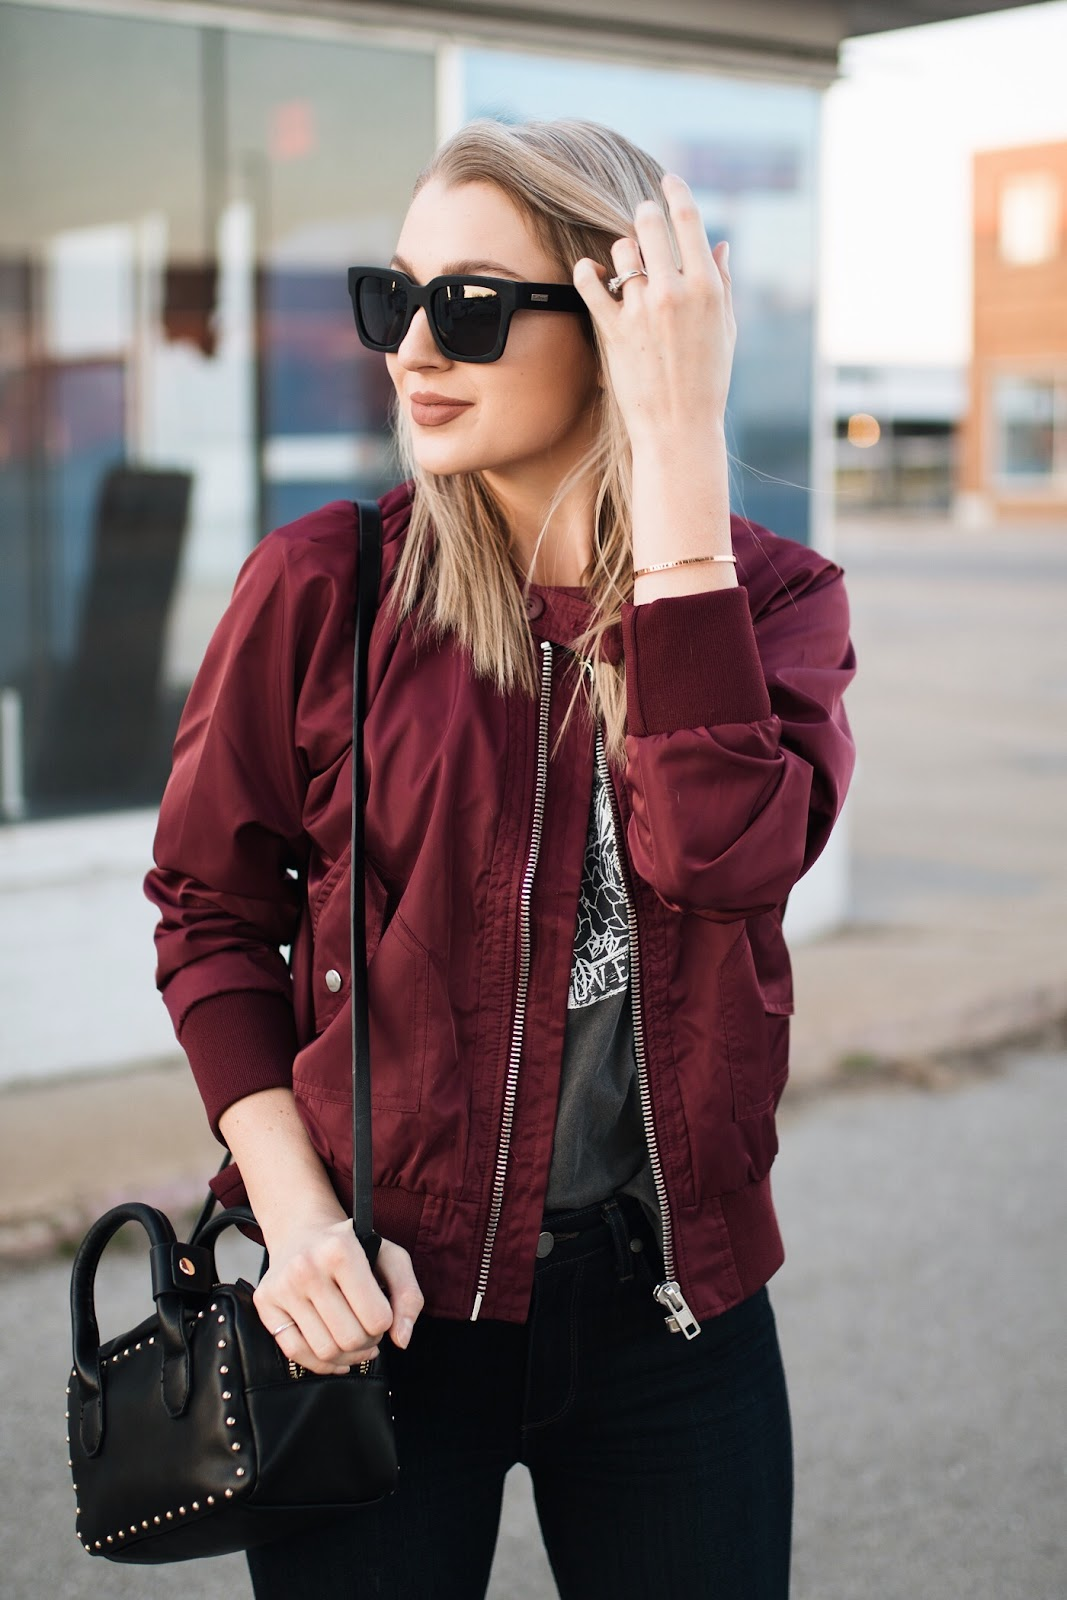 Free People burgundy bomber jacket